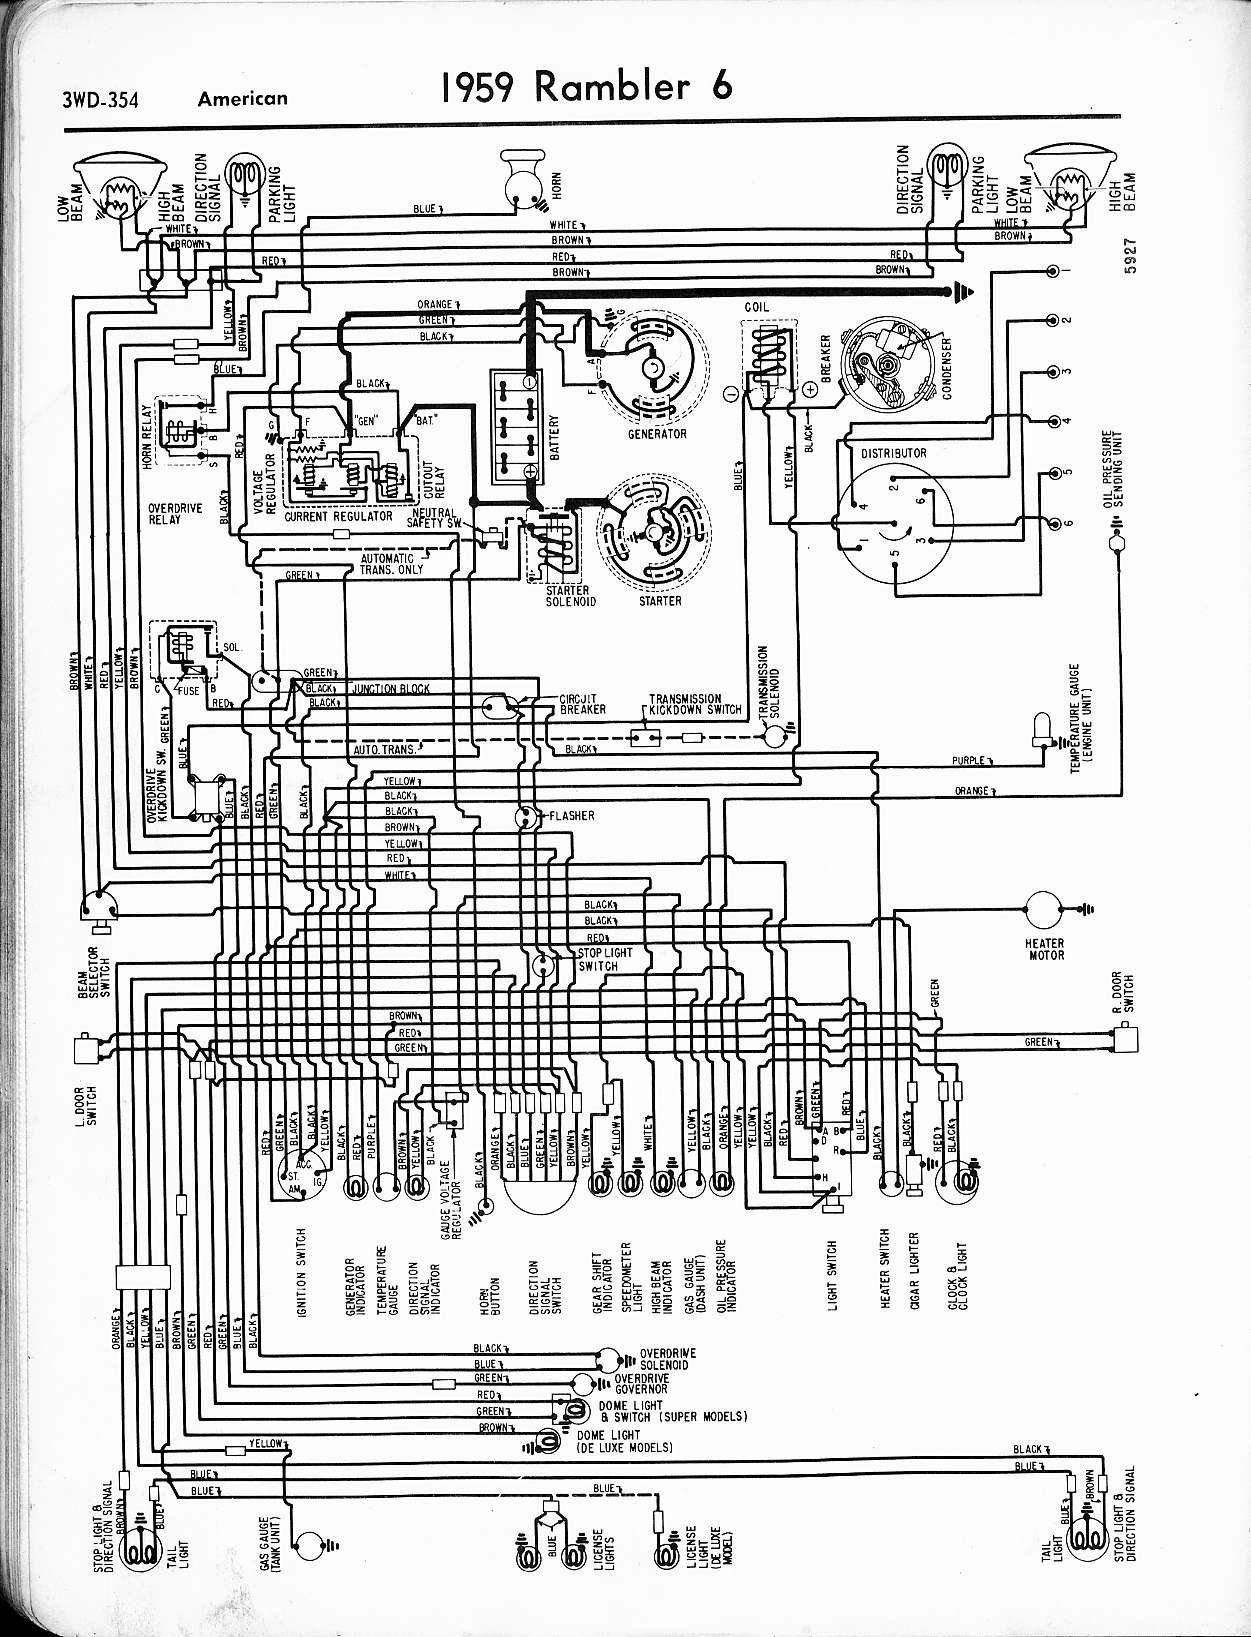 amc wiring diagram general wiring diagram information u2022 rh velvetfive co uk